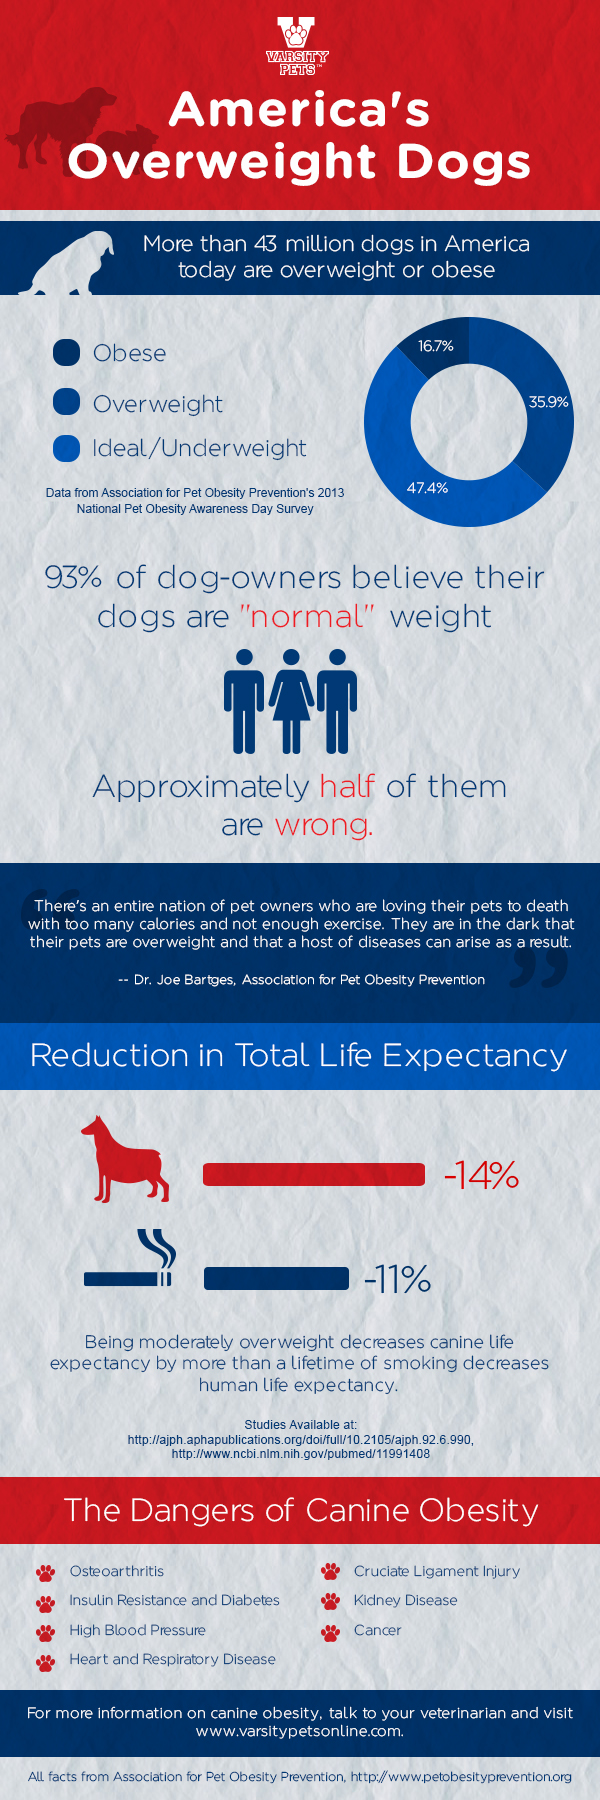 An infographic about the dangers of canine obesity.